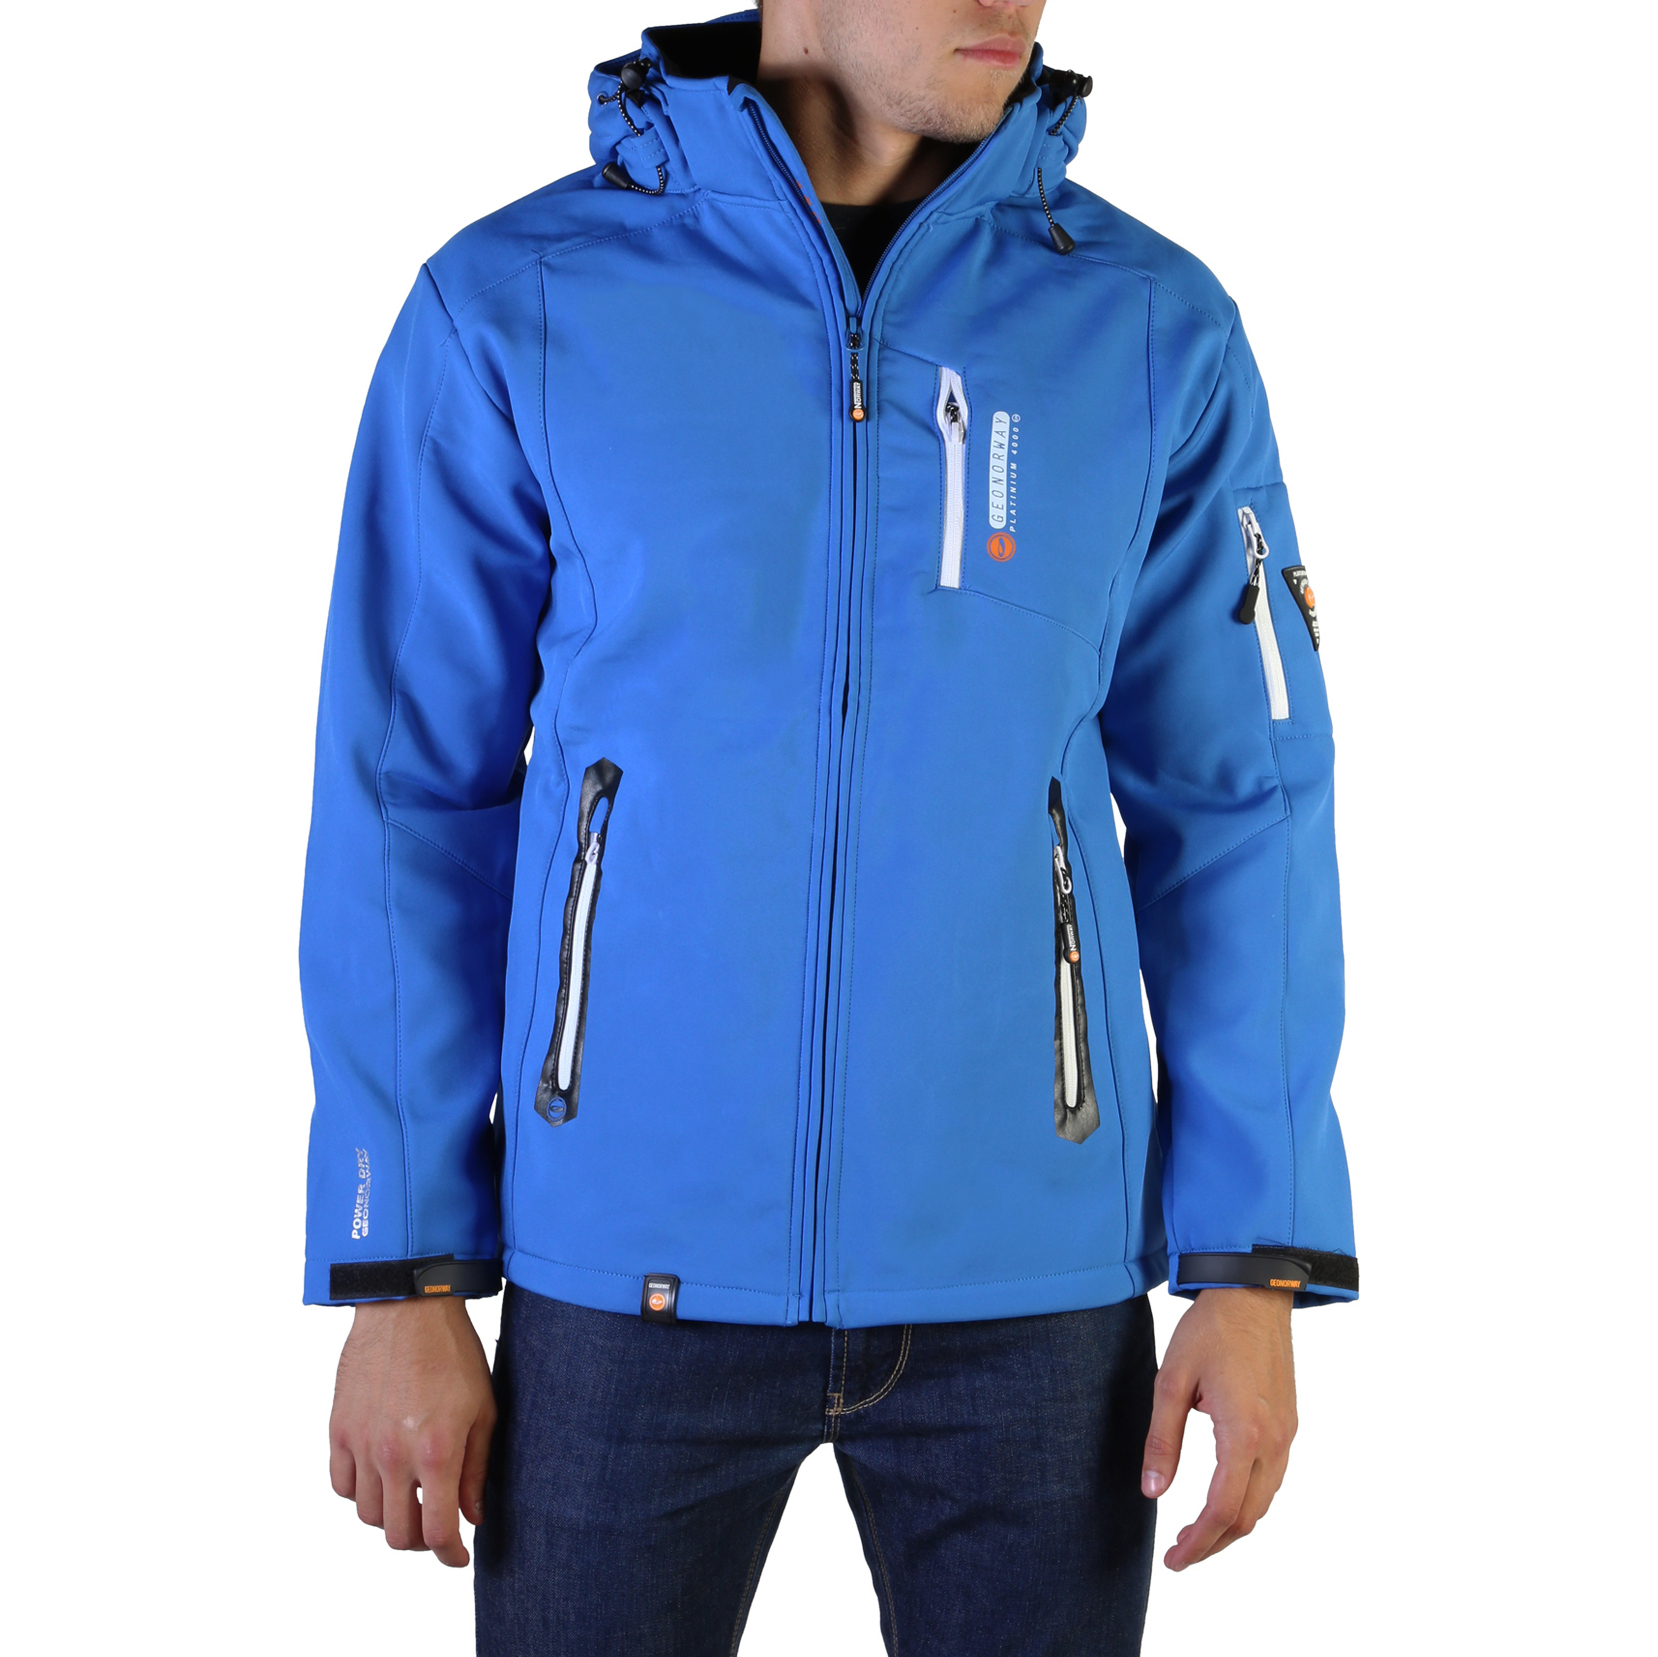 Geographical Norway Tichri man